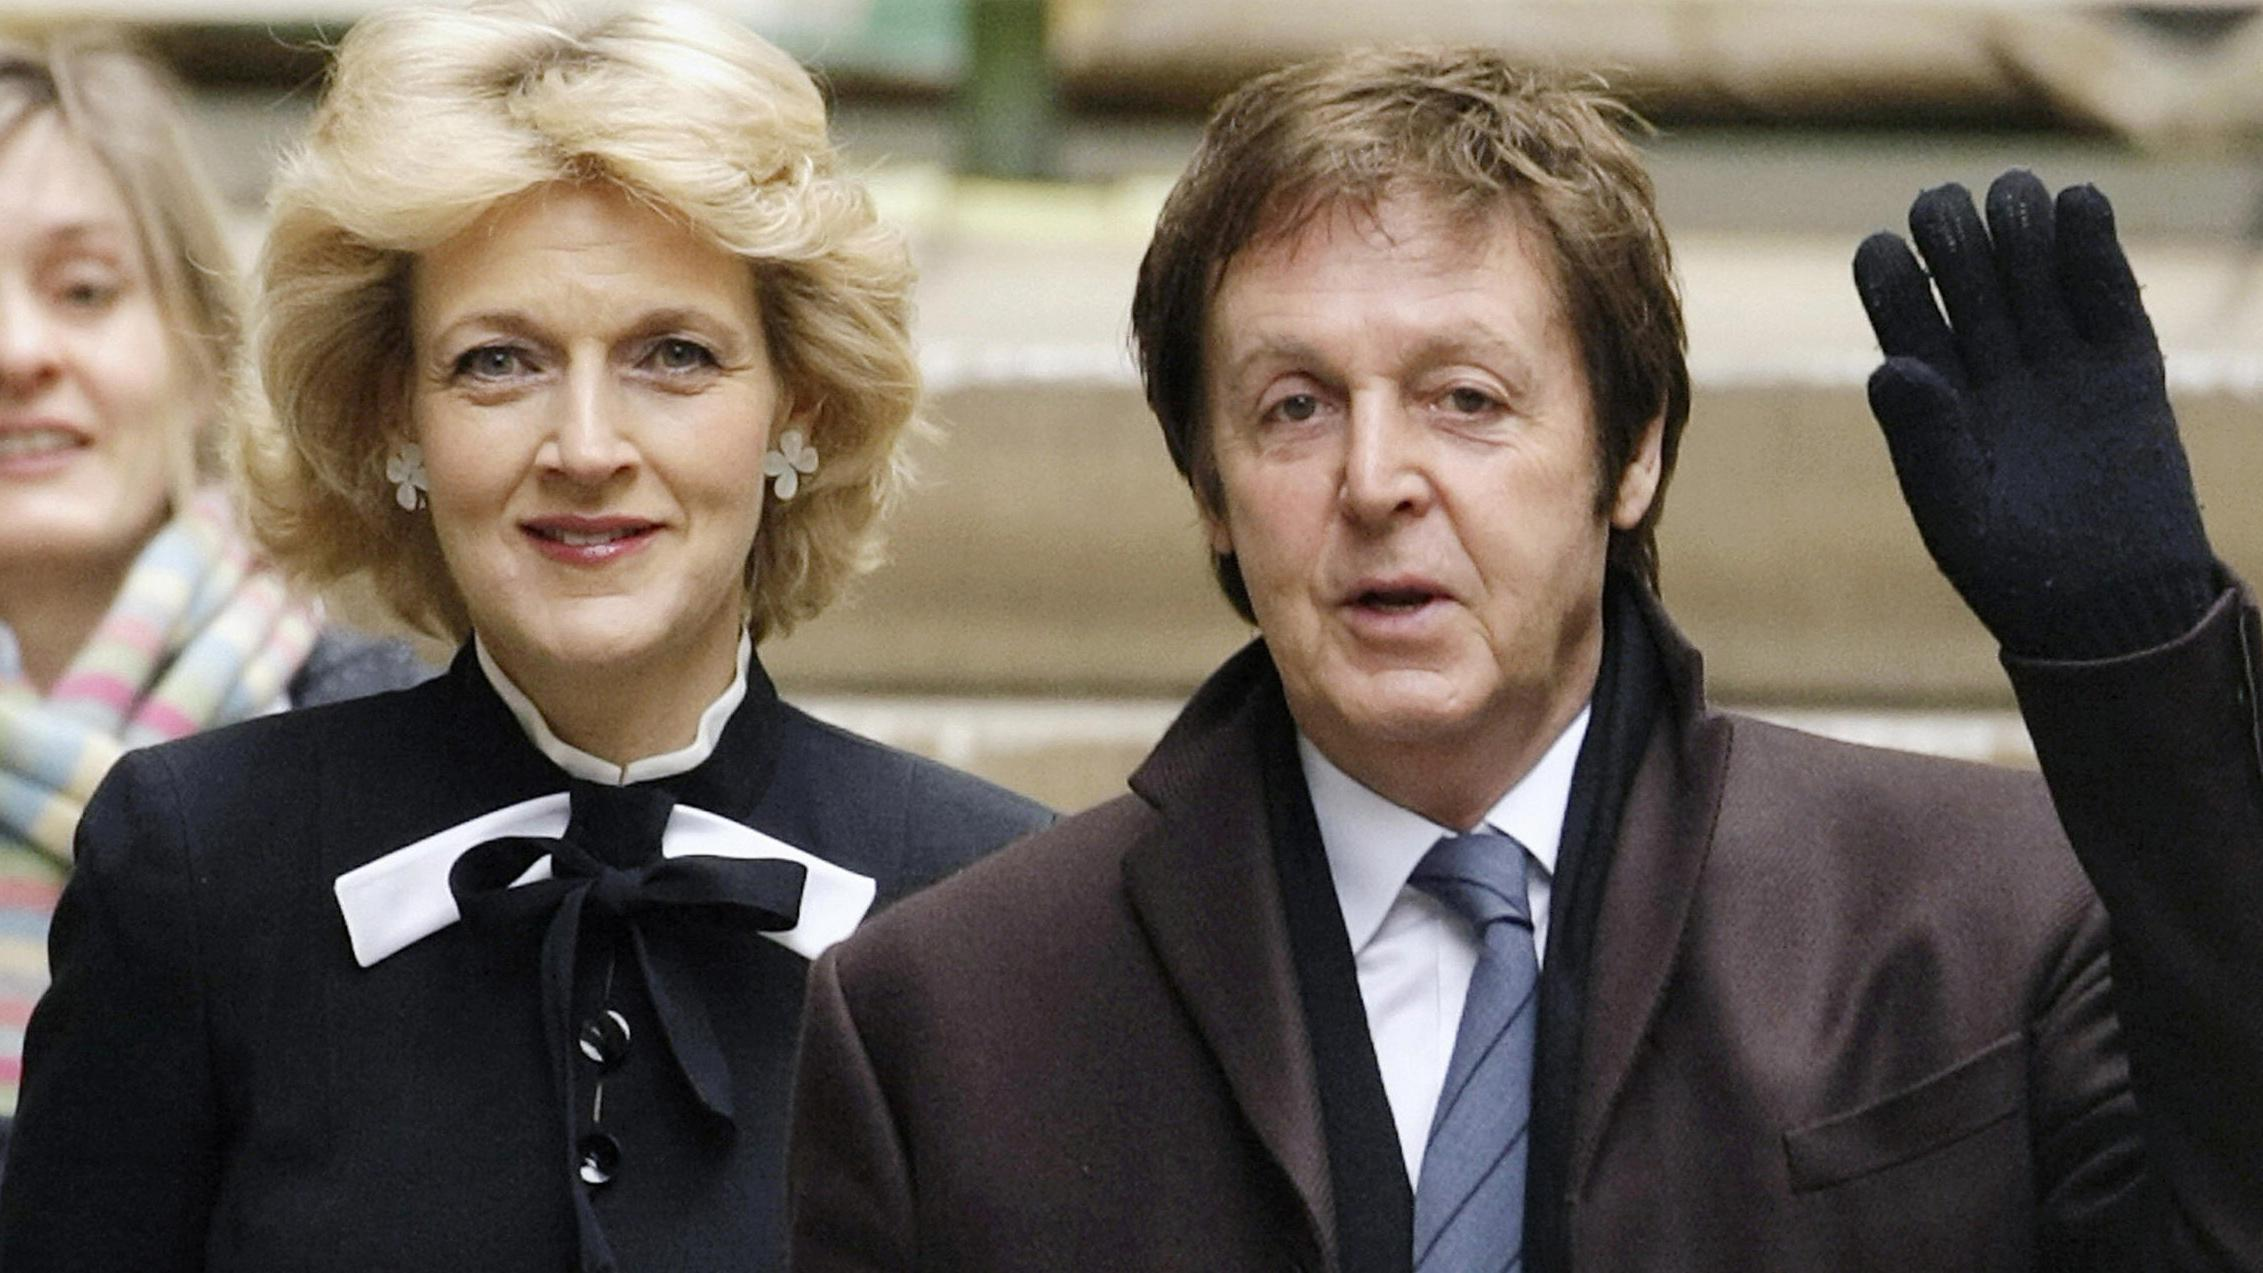 Paul mccartney divorce its charles di round 2 nude (81 photo), Is a cute Celebrites image